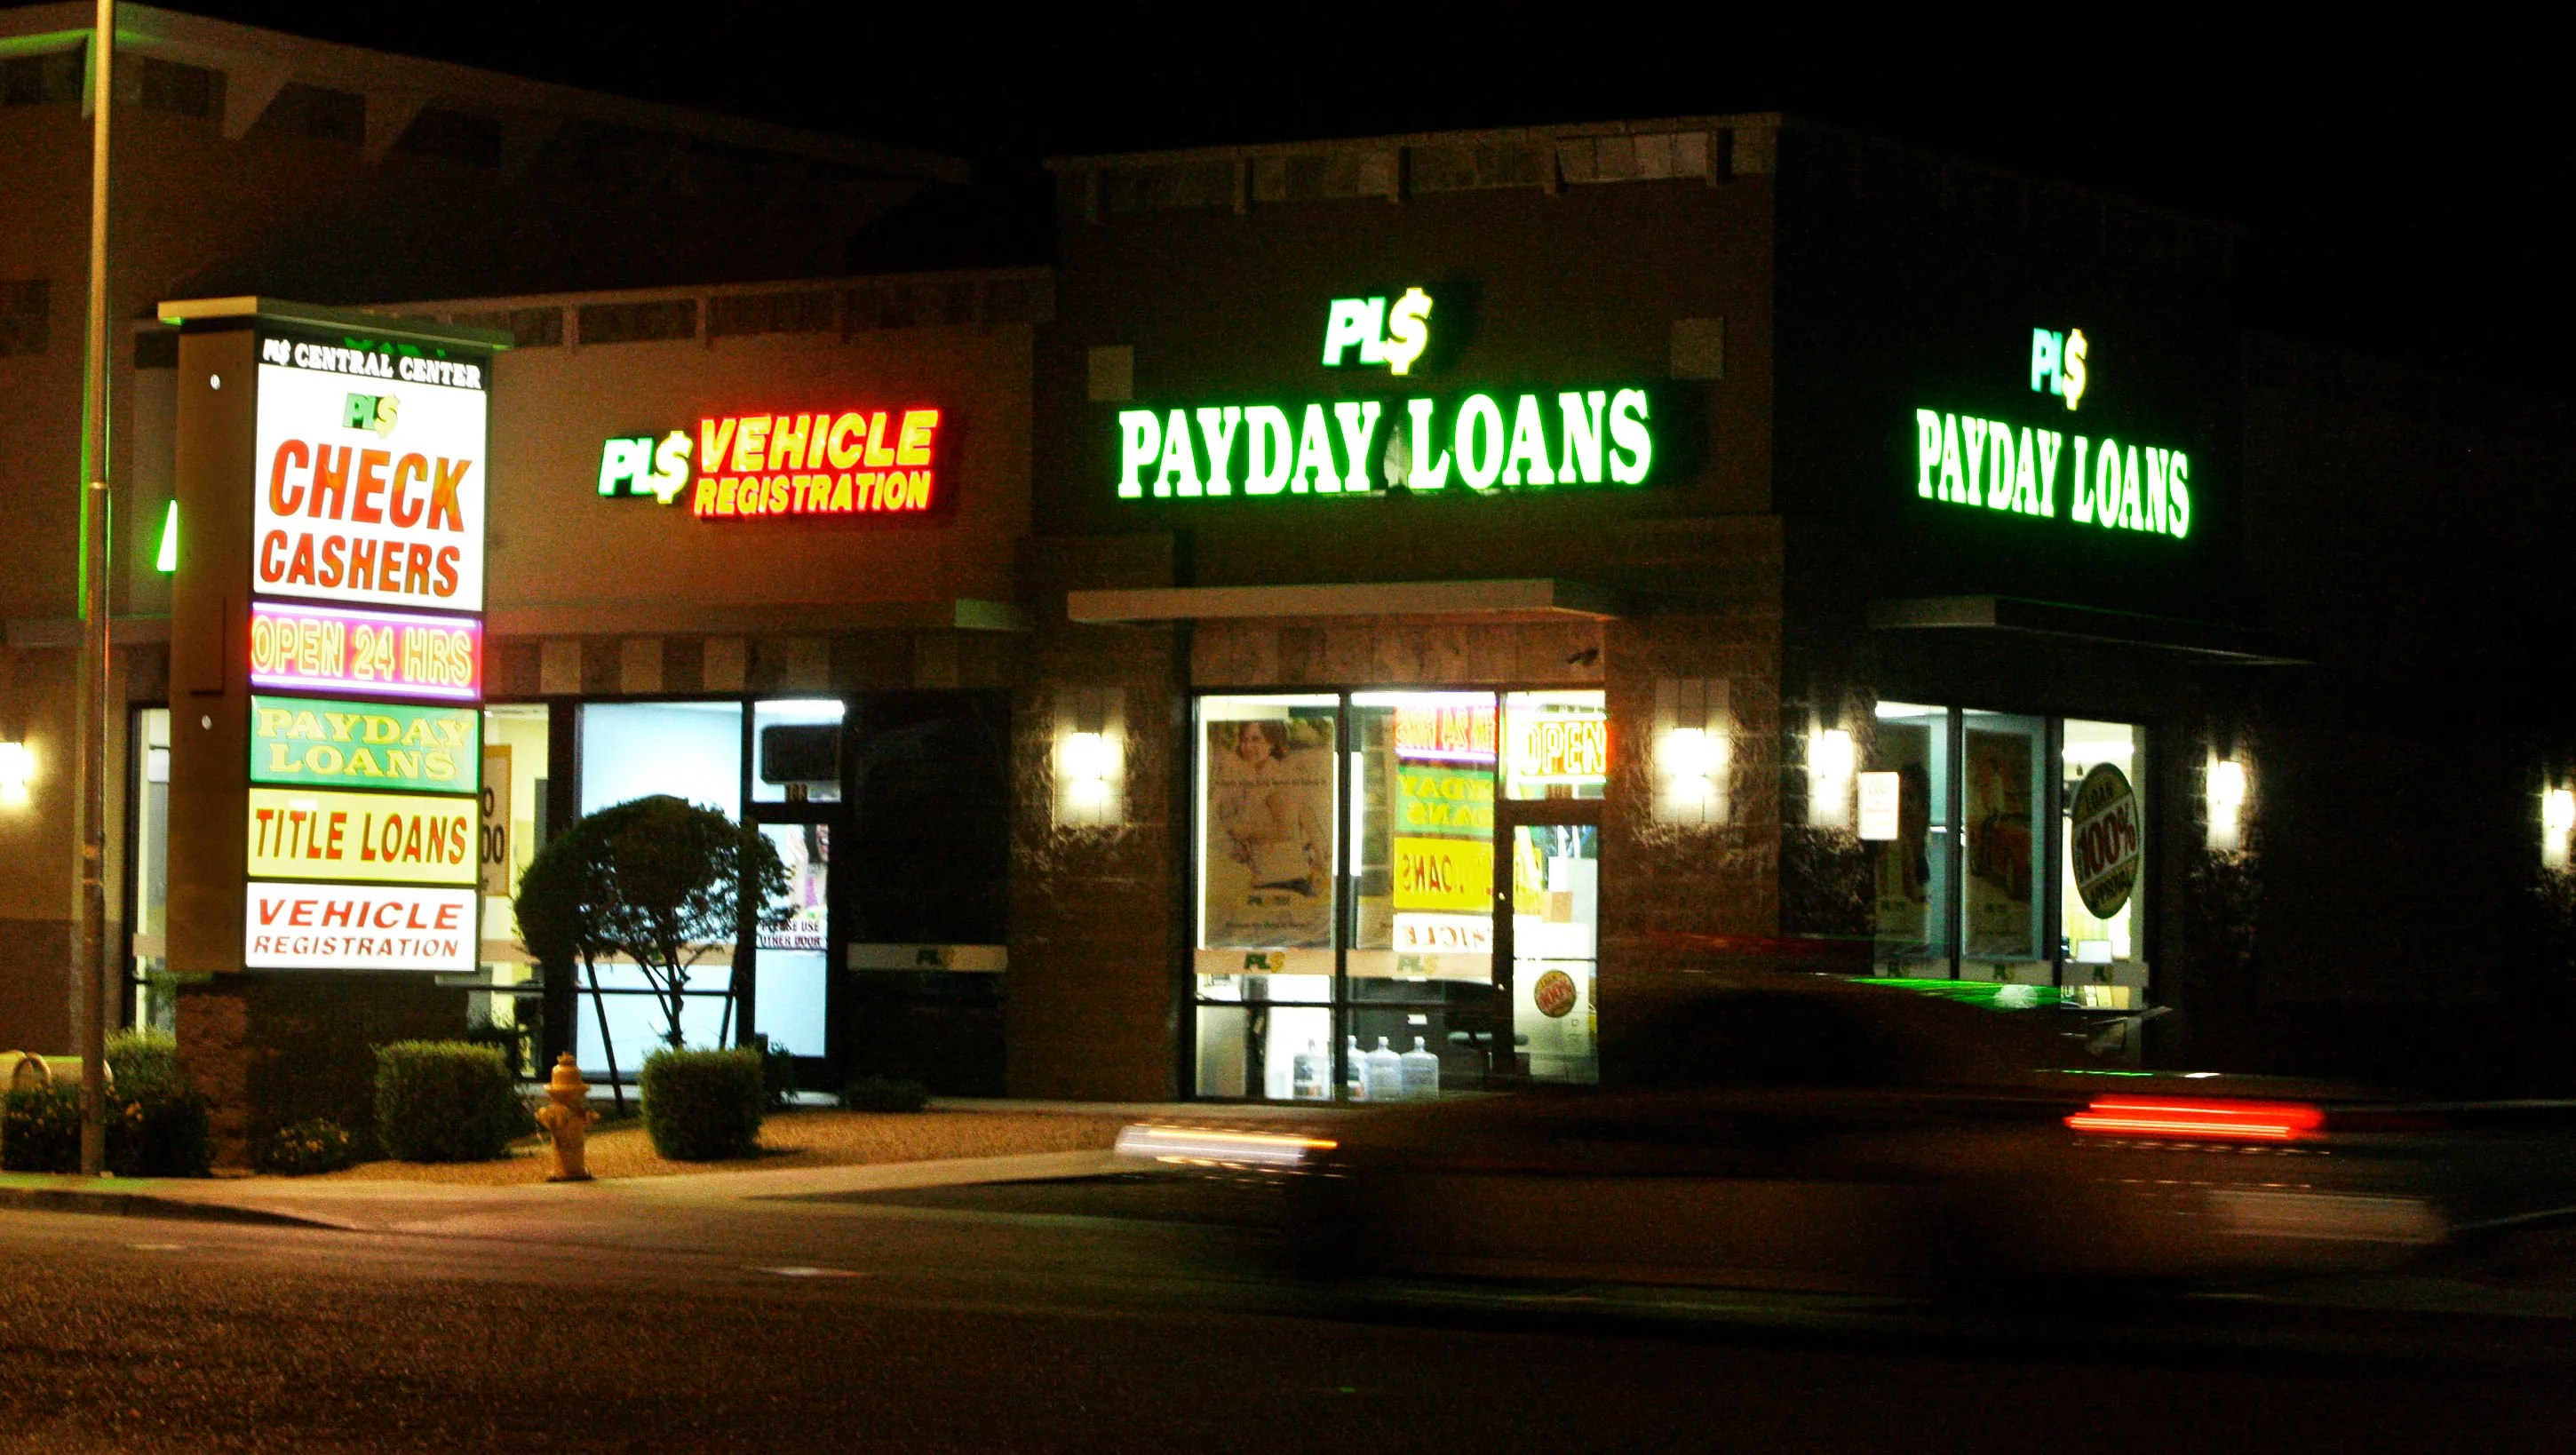 Escape Payday Loan Debt With These Tips